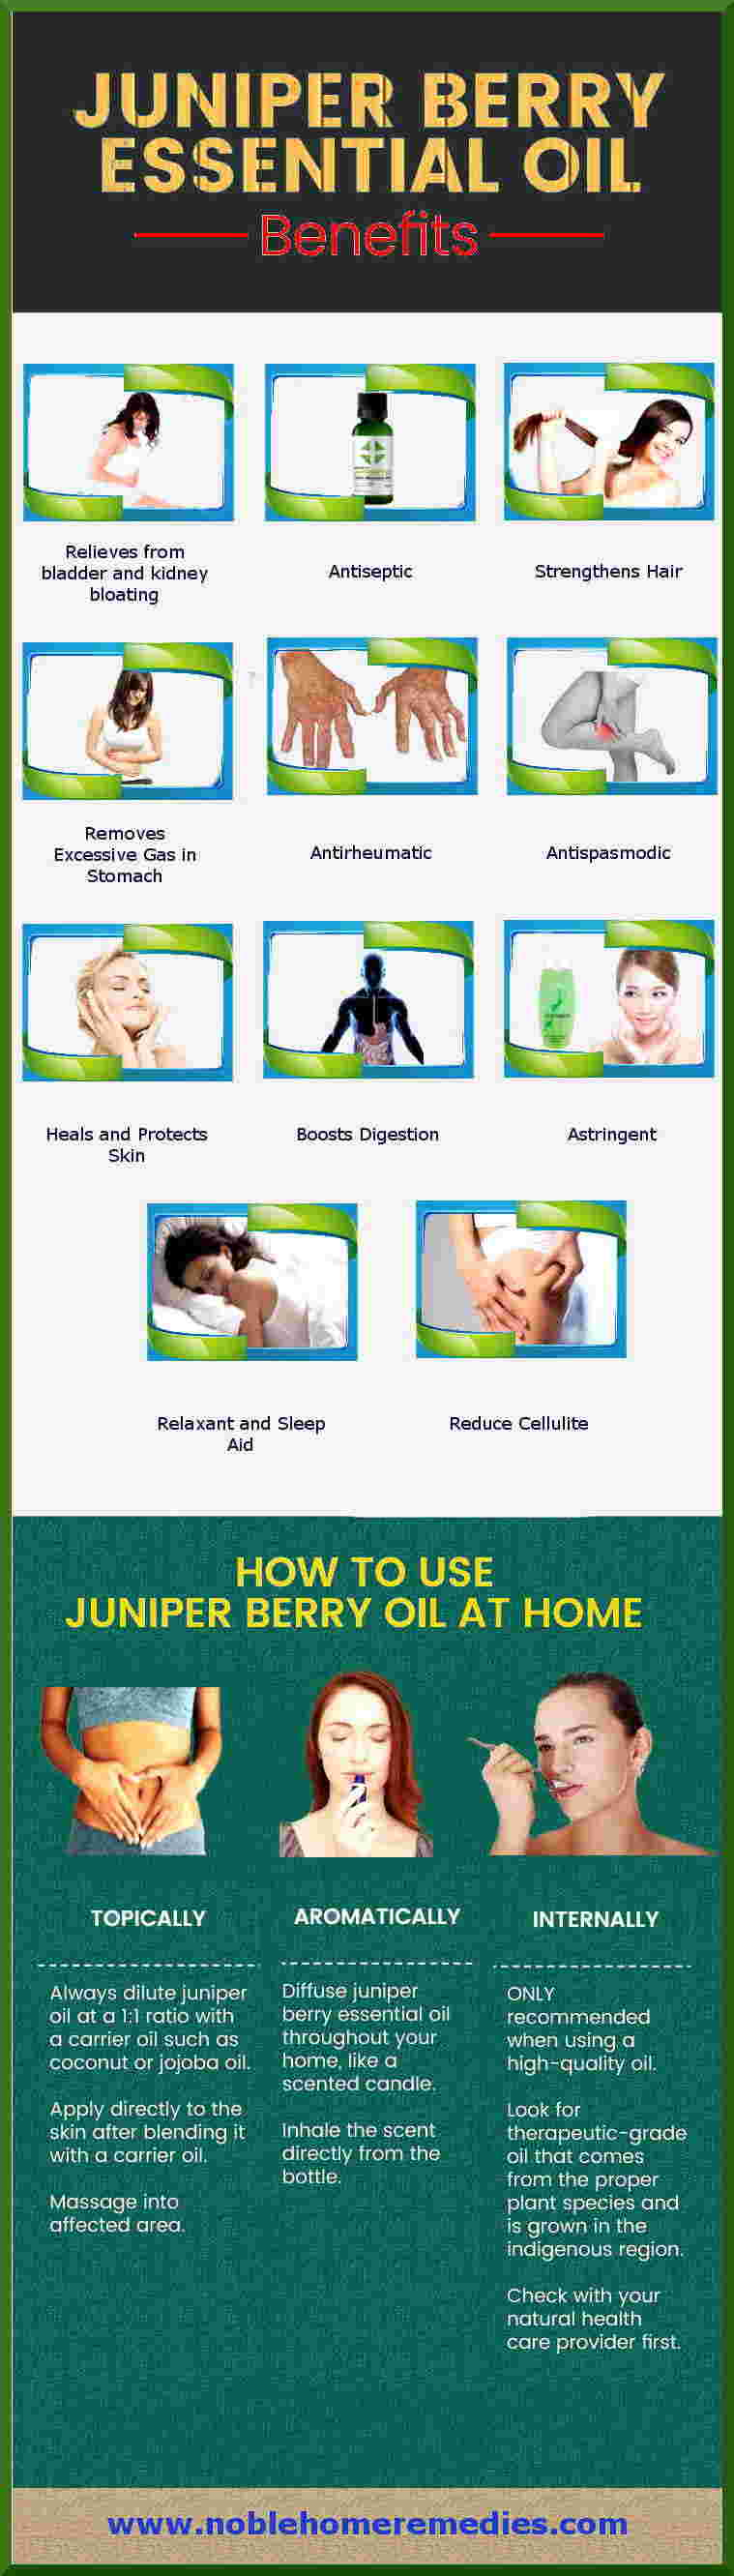 Juniper Berry Essential Oil Health Benefits